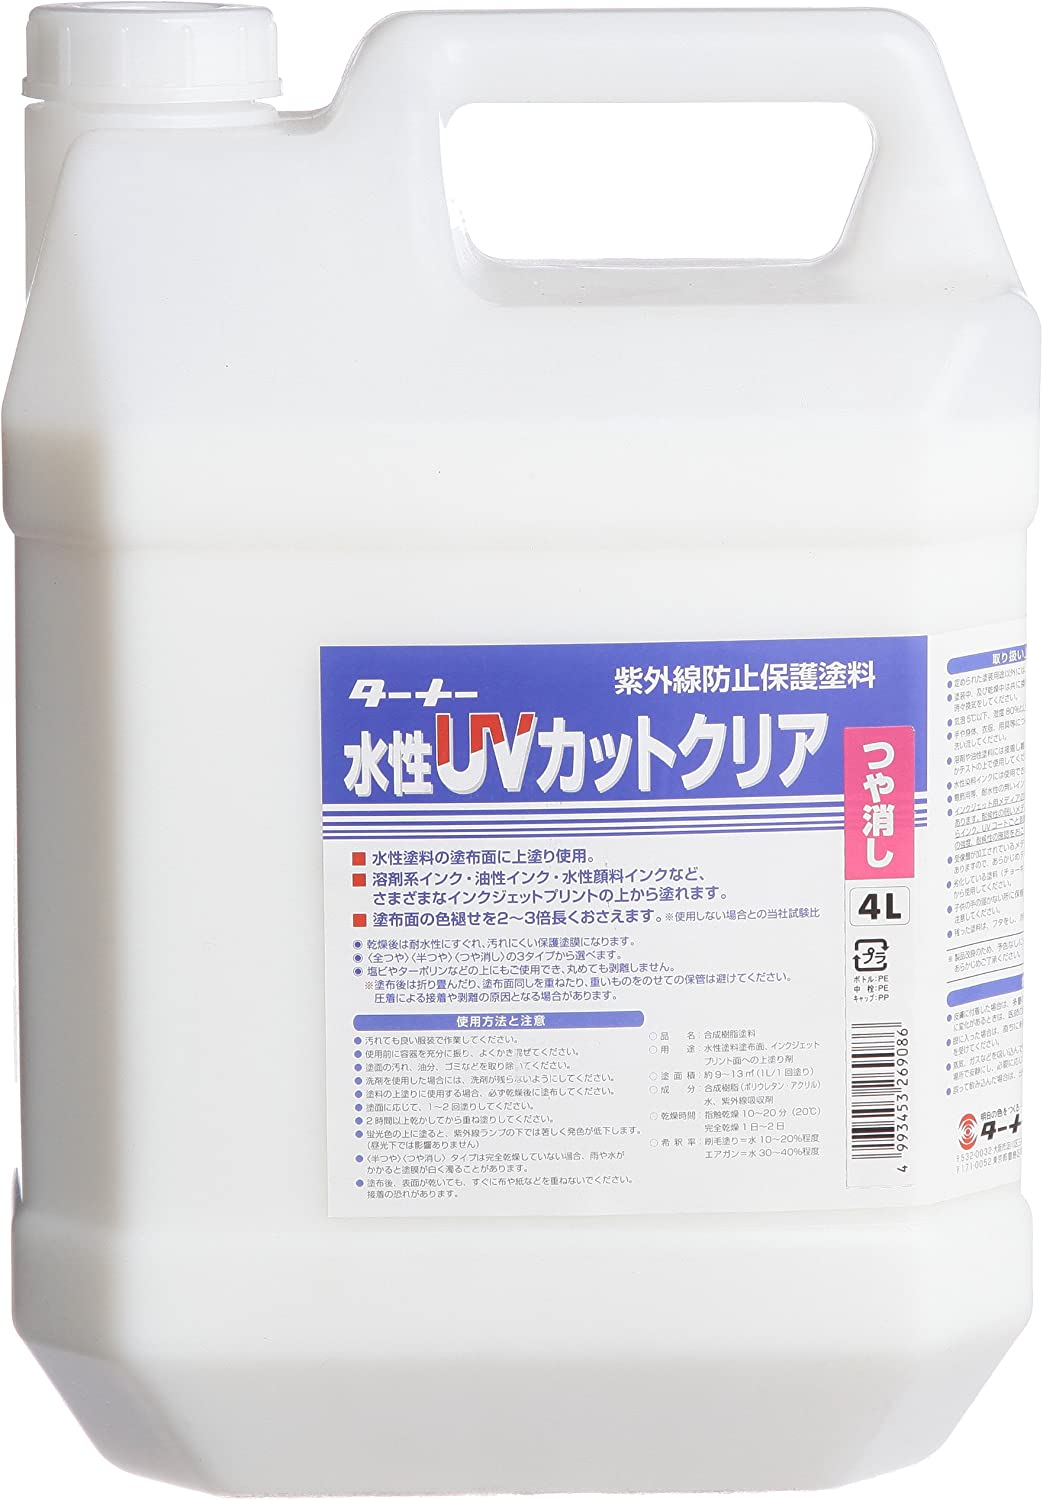 servicio honesto Turner Turner Turner aqueous UV coat (matte) 4L (japan import)  todos los bienes son especiales